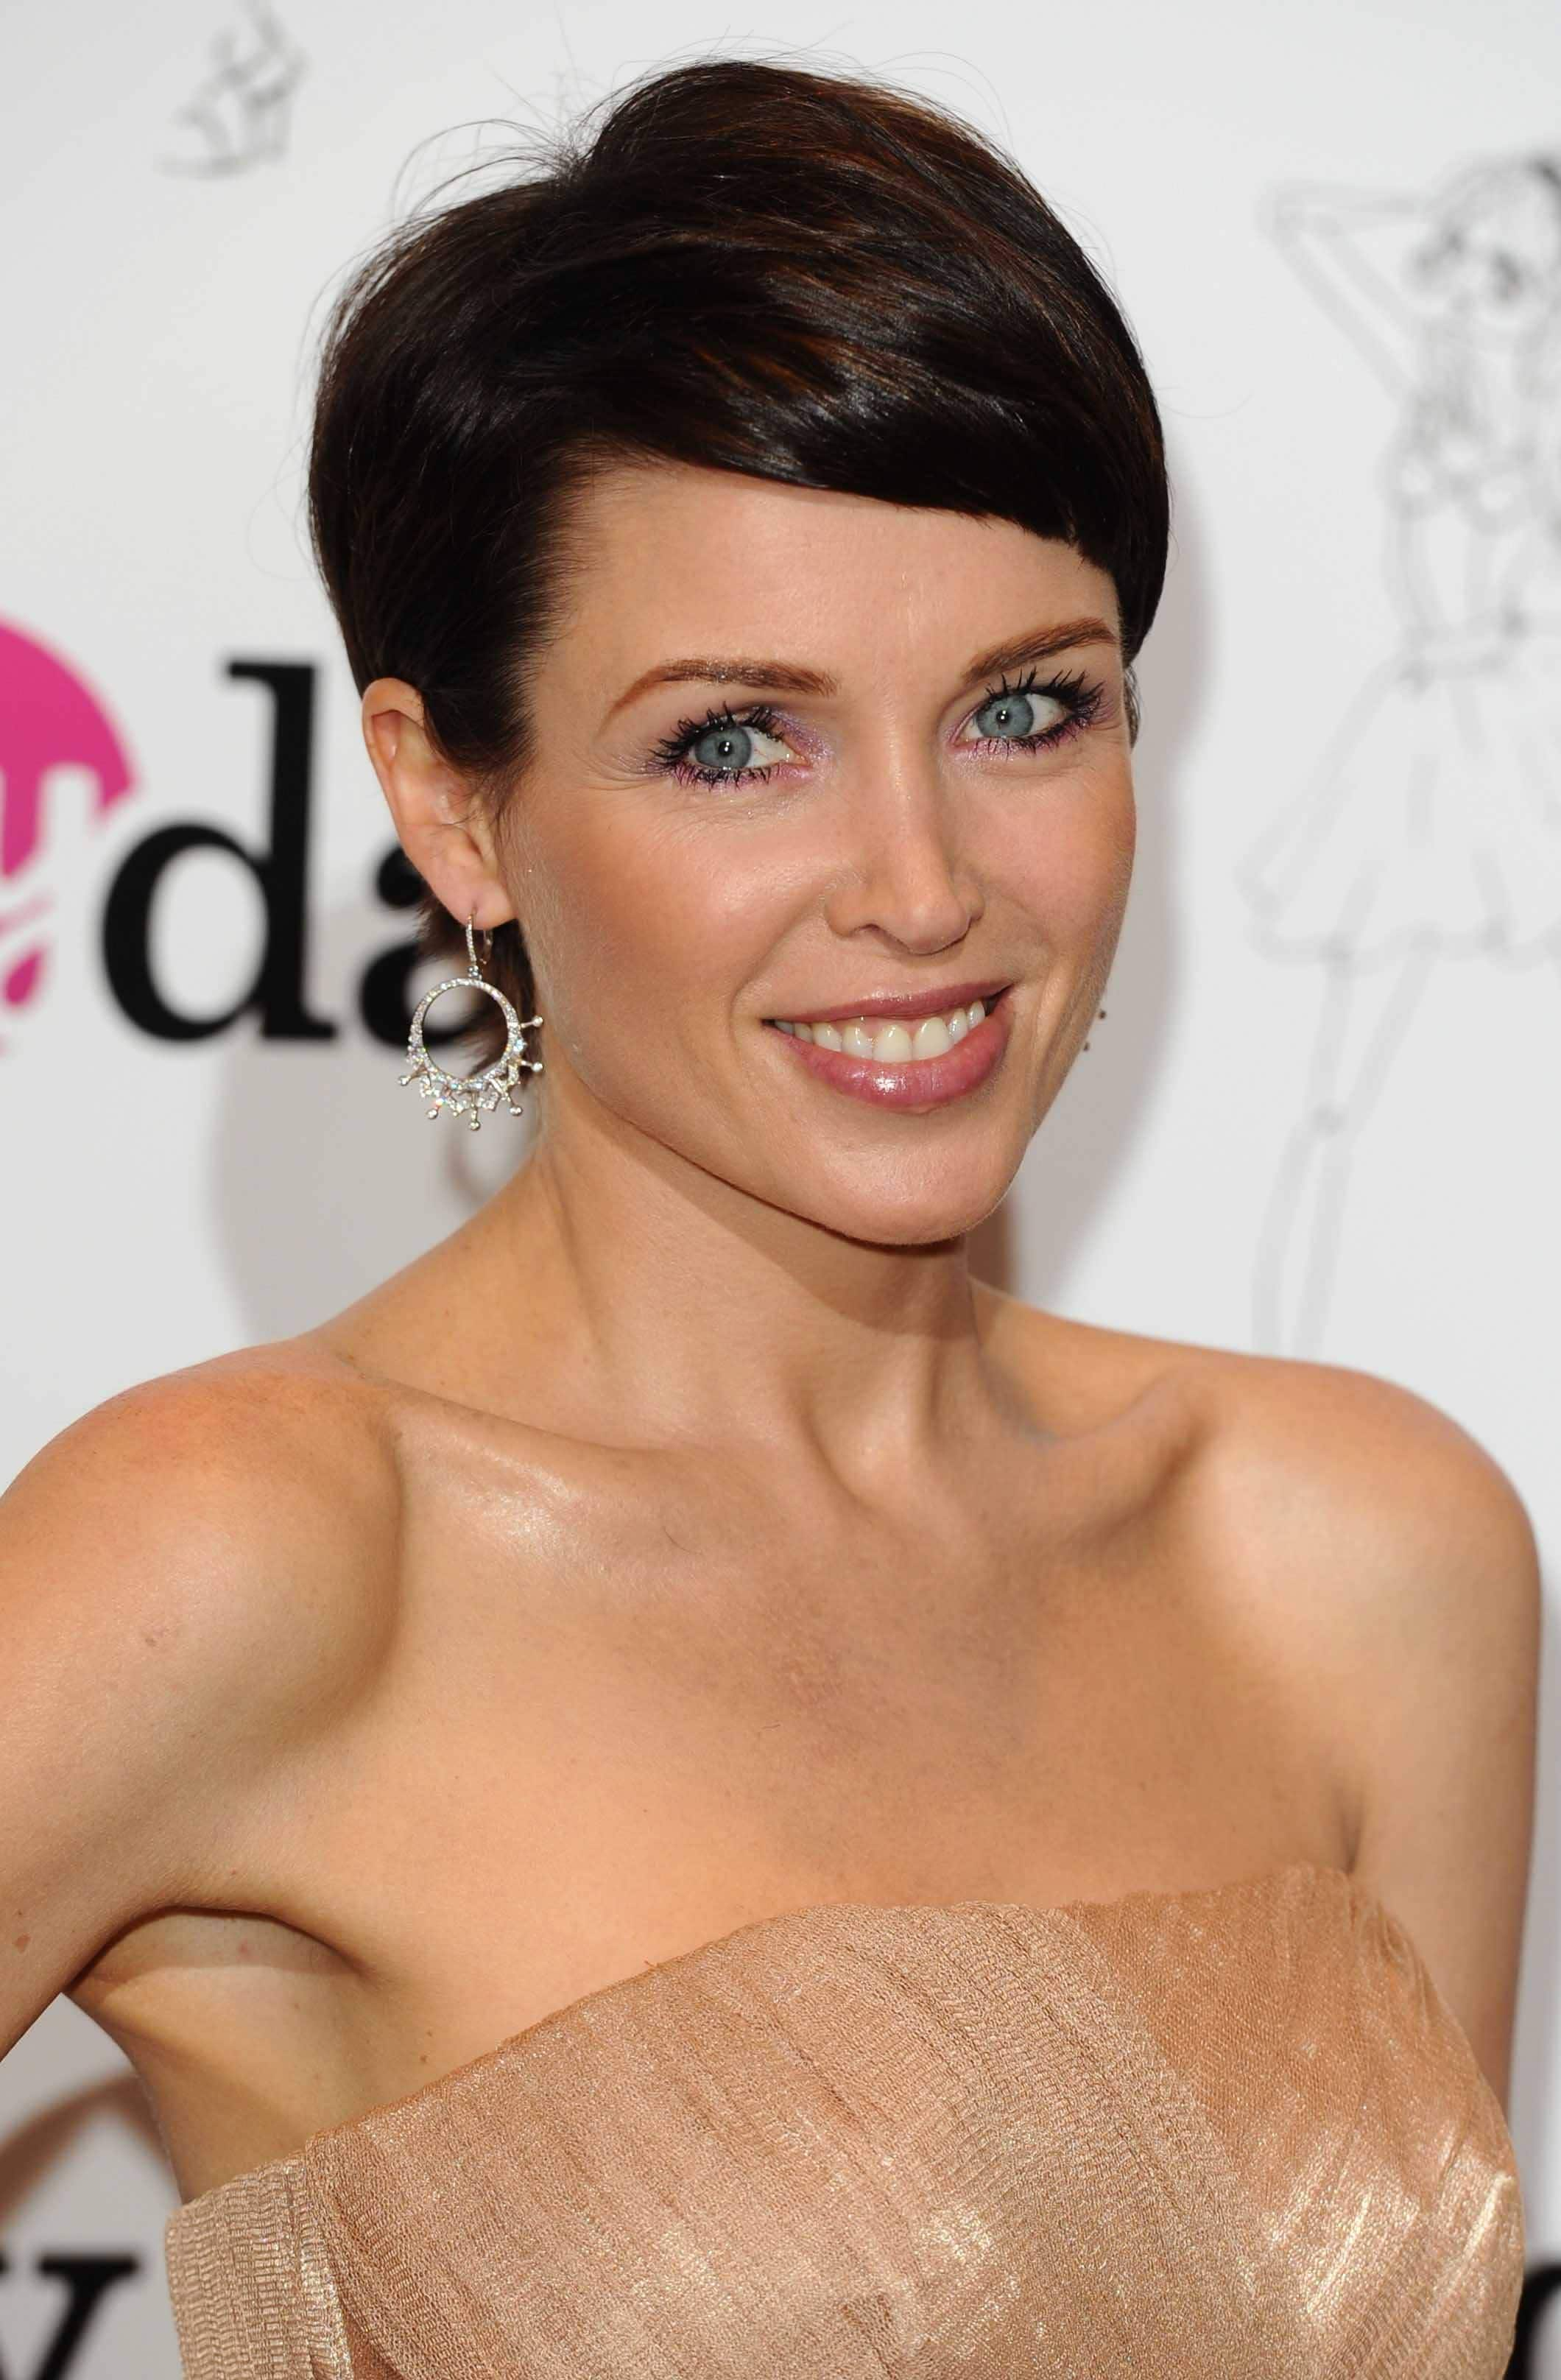 Pixie Crop Hairstyles Dannii Minogue Credit Rex By Shutterstock